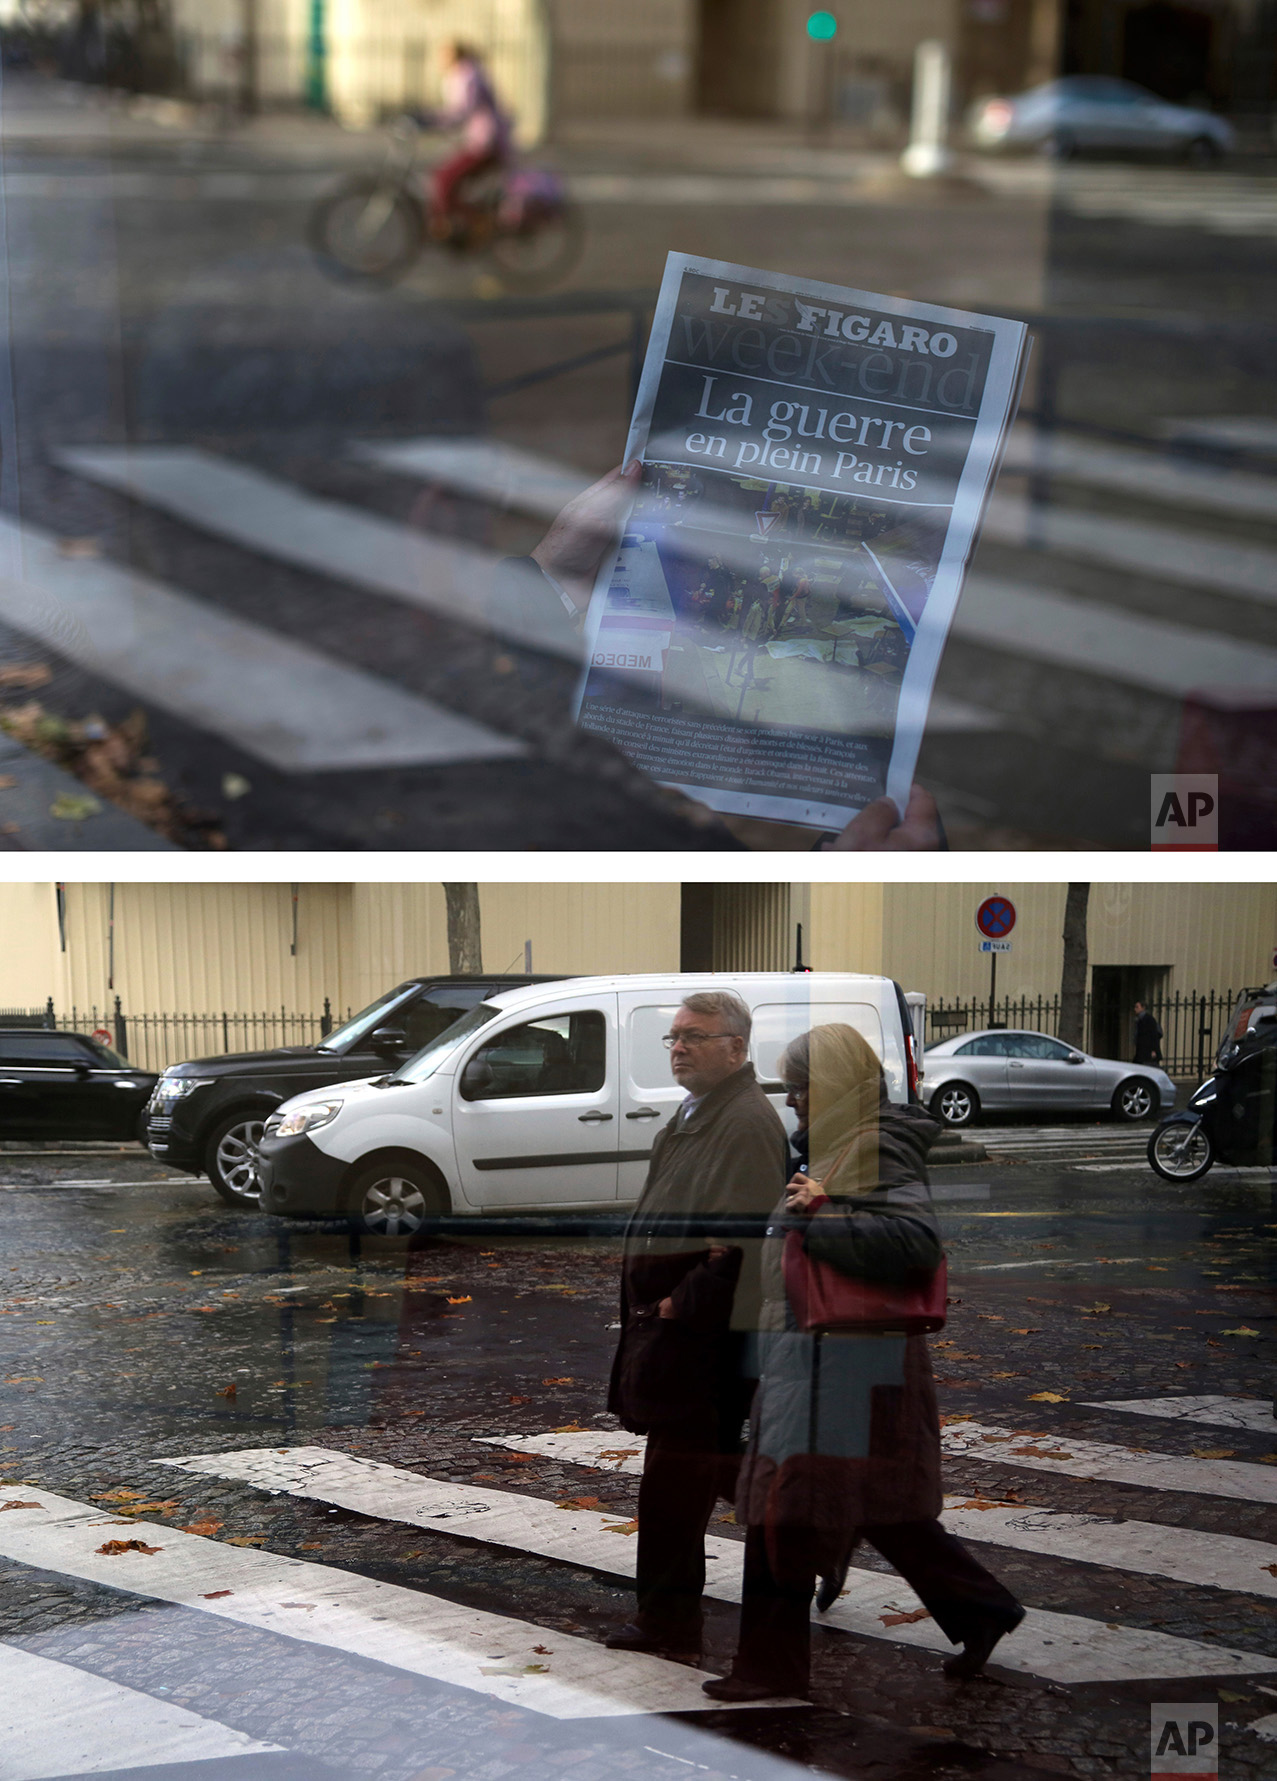 """This combination of two photos shows a Saturday, Nov. 14, 2015 photo, top, of a refelction of a man reading a newspaper with the headline: """"War in the Heart of Paris"""" in a hotel lobby in Paris, after the attacks on the city, and seen through the hotel window people walking along the zebra crossing, bottom, on Wednesday Nov. 9, 2016. (AP Photo/Peter Dejong, Thibault Camus)"""